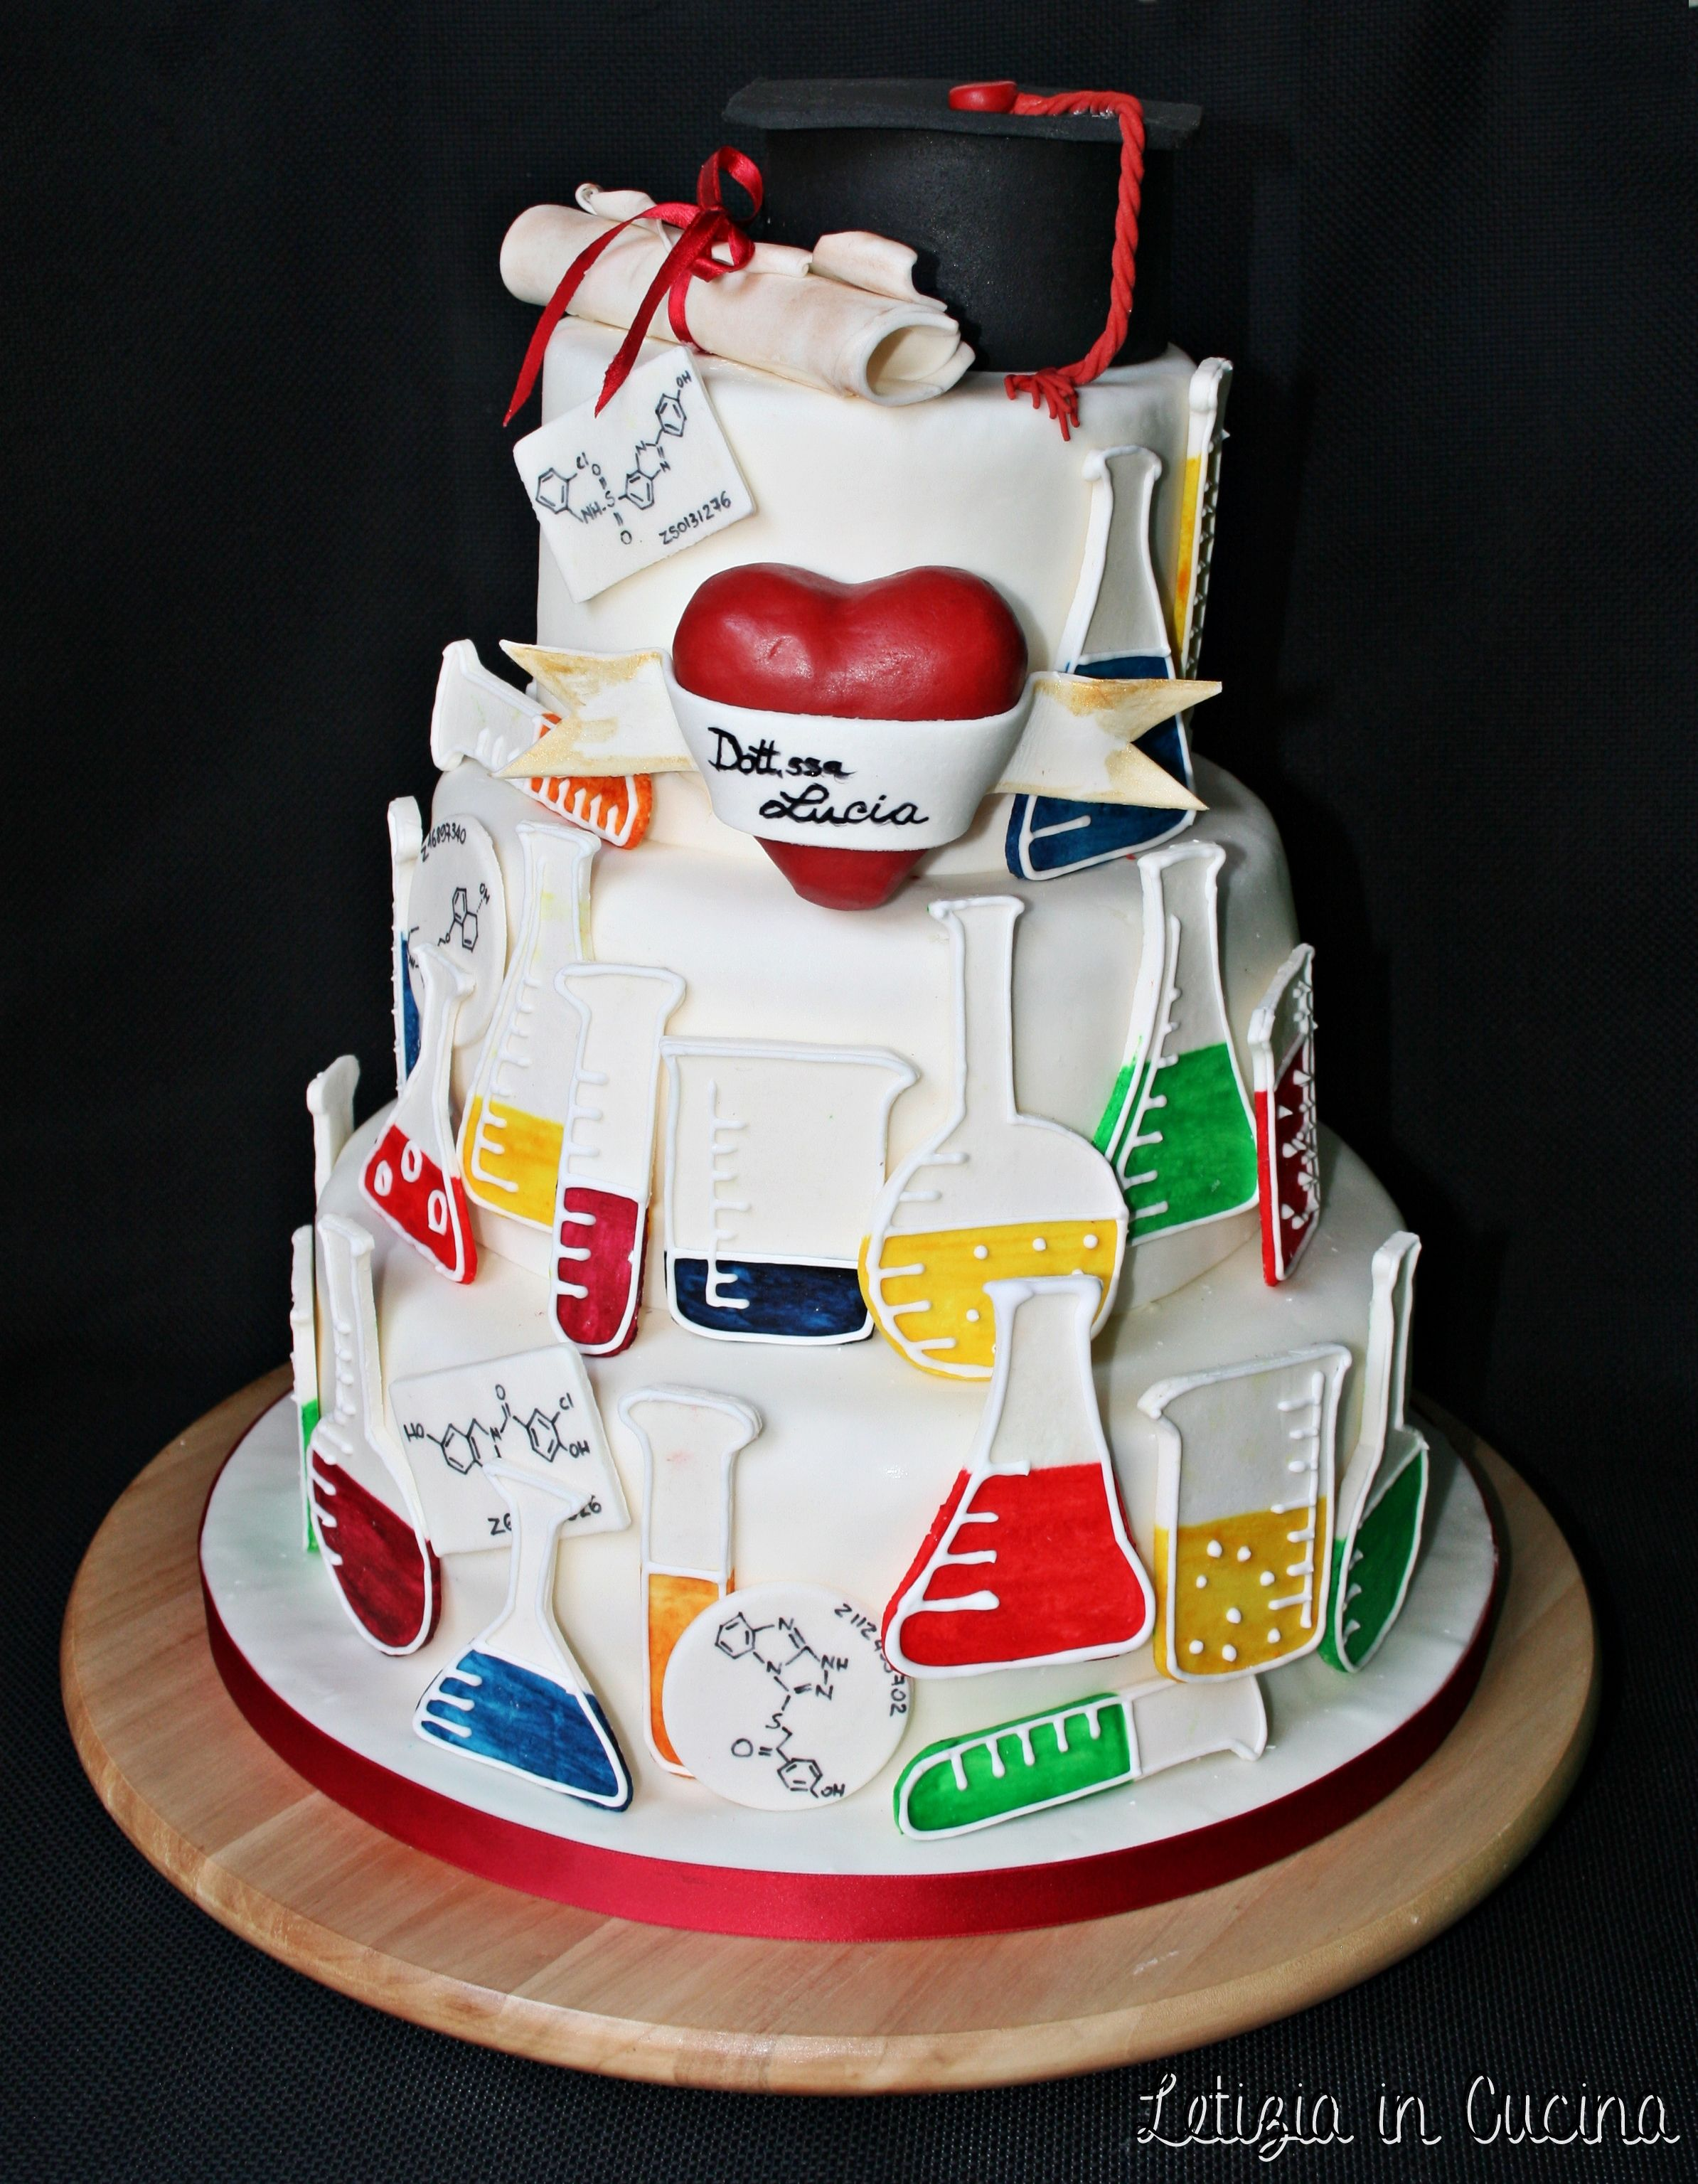 cake creative cakes science cake mad science crazy cakes fancy cakes ...